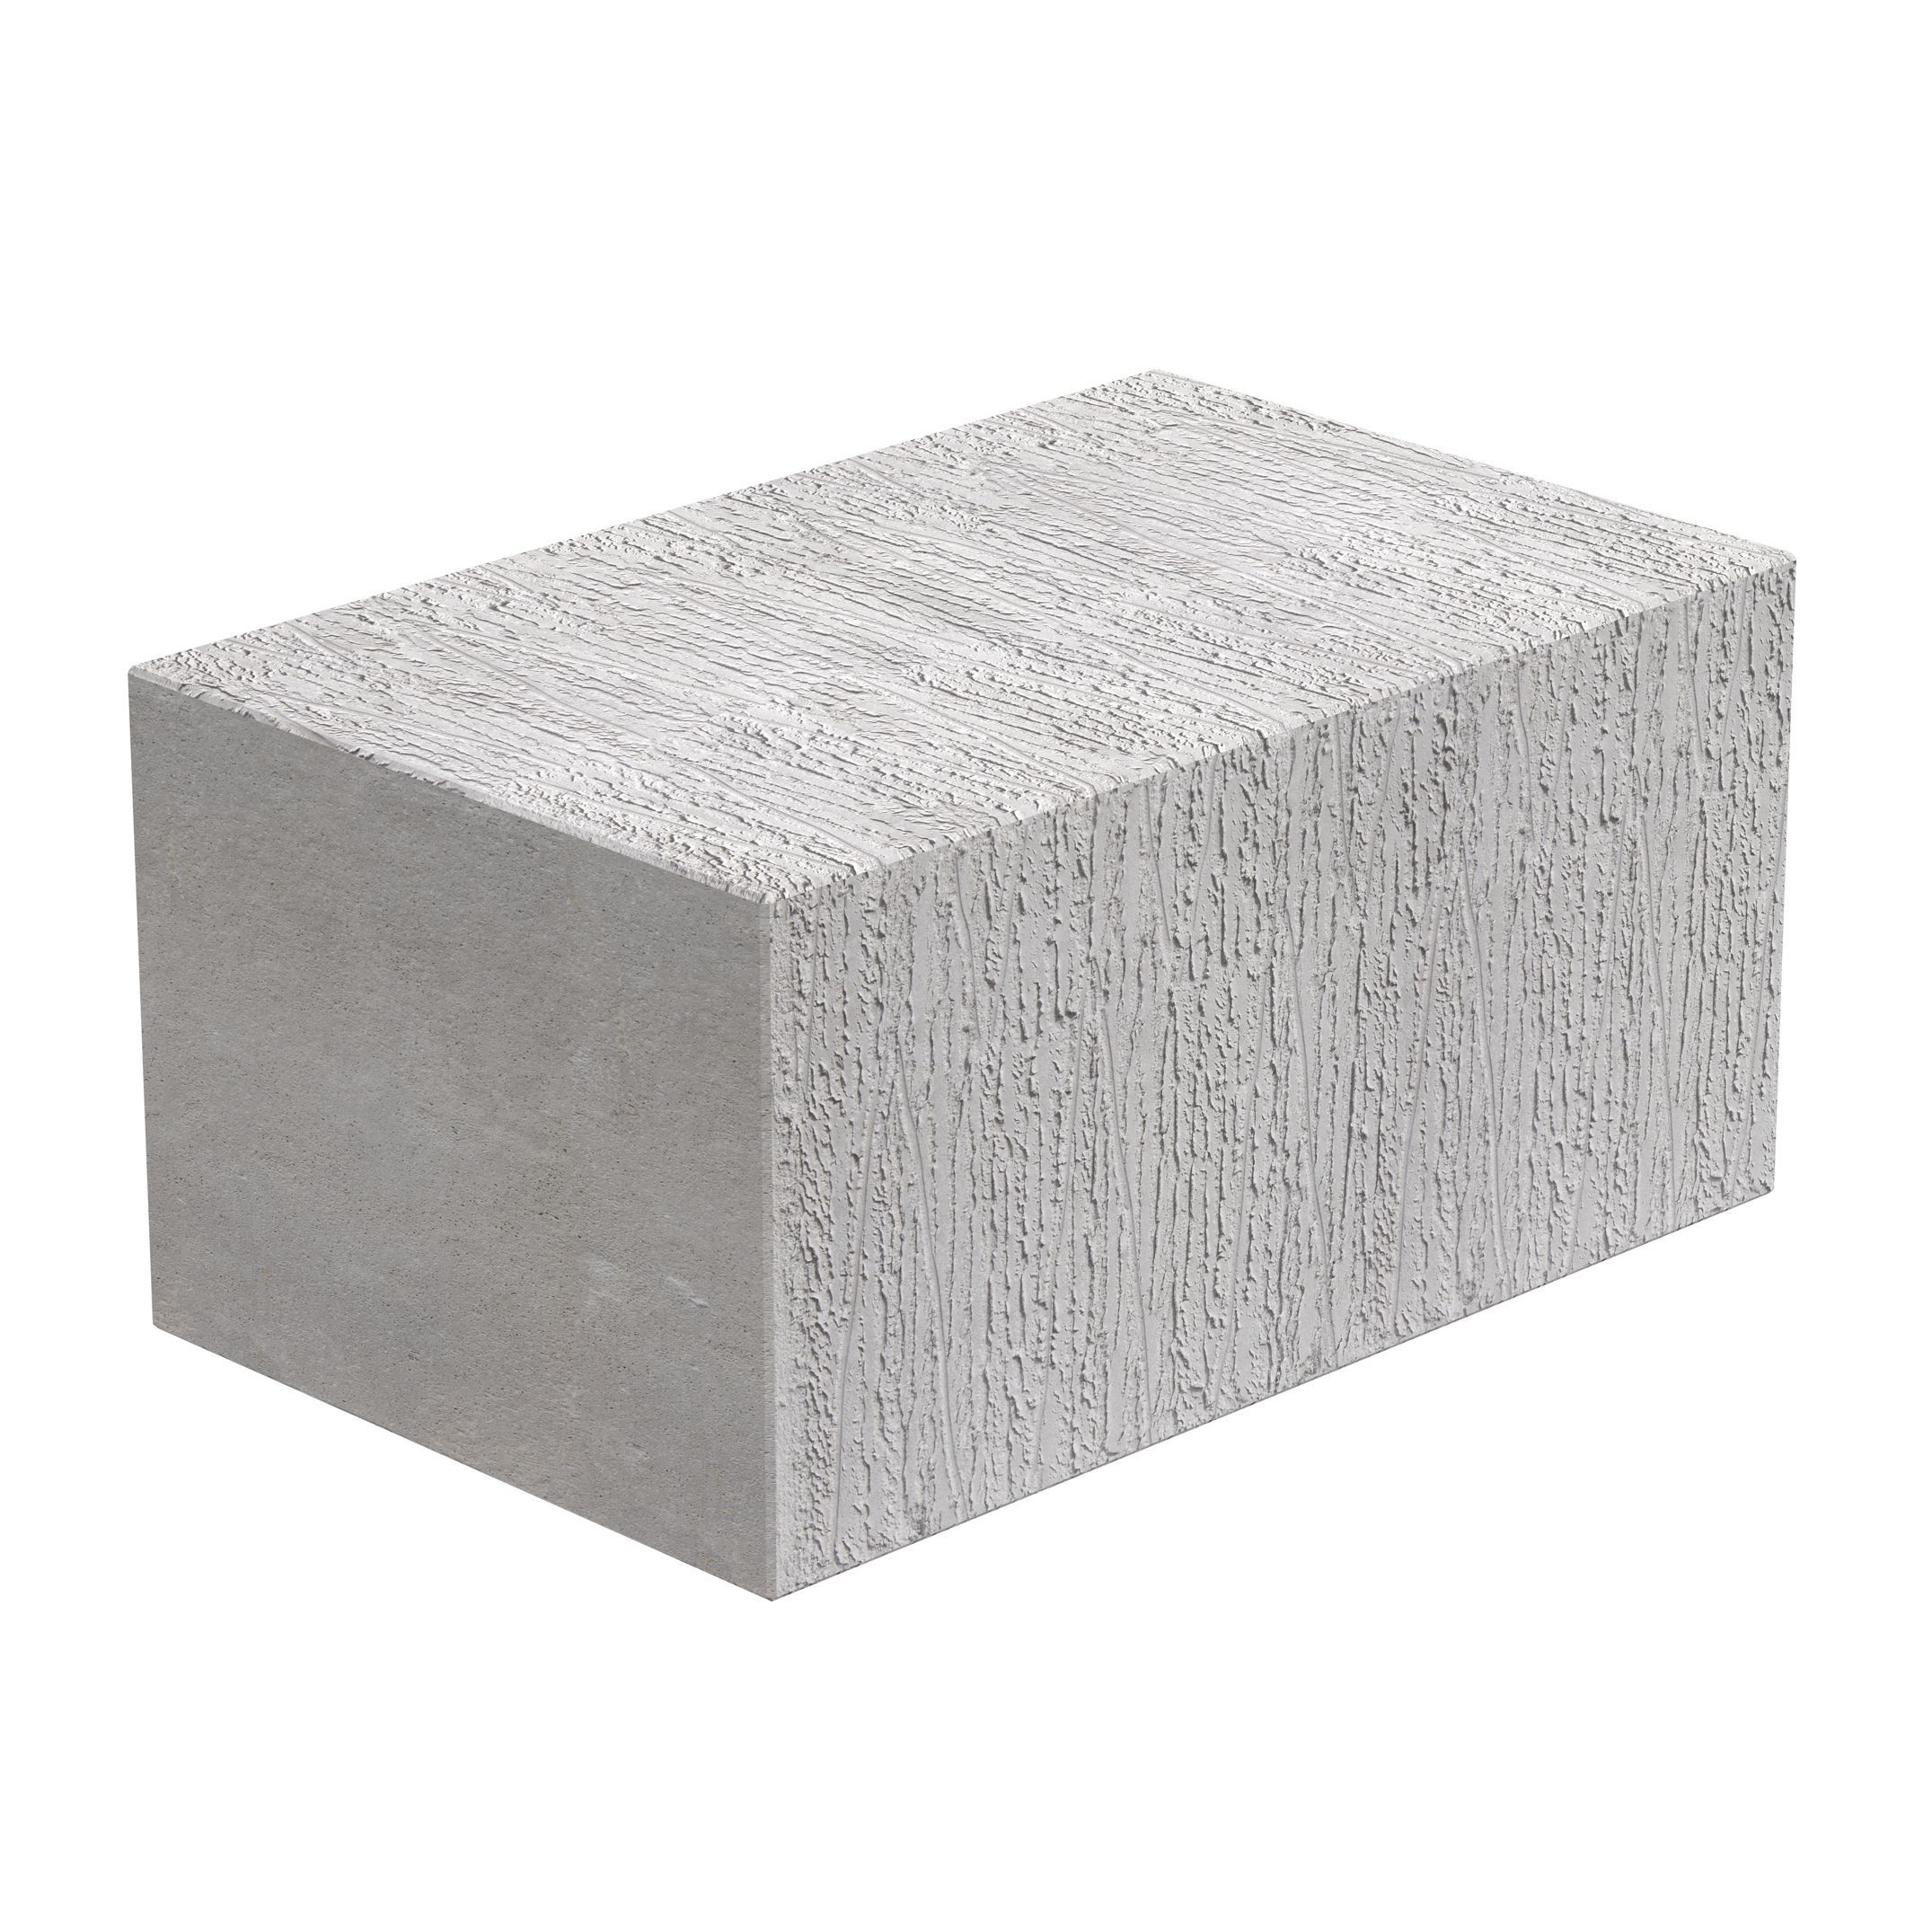 Toplite Grey Aerated Concrete Foundation Block H 215mm W